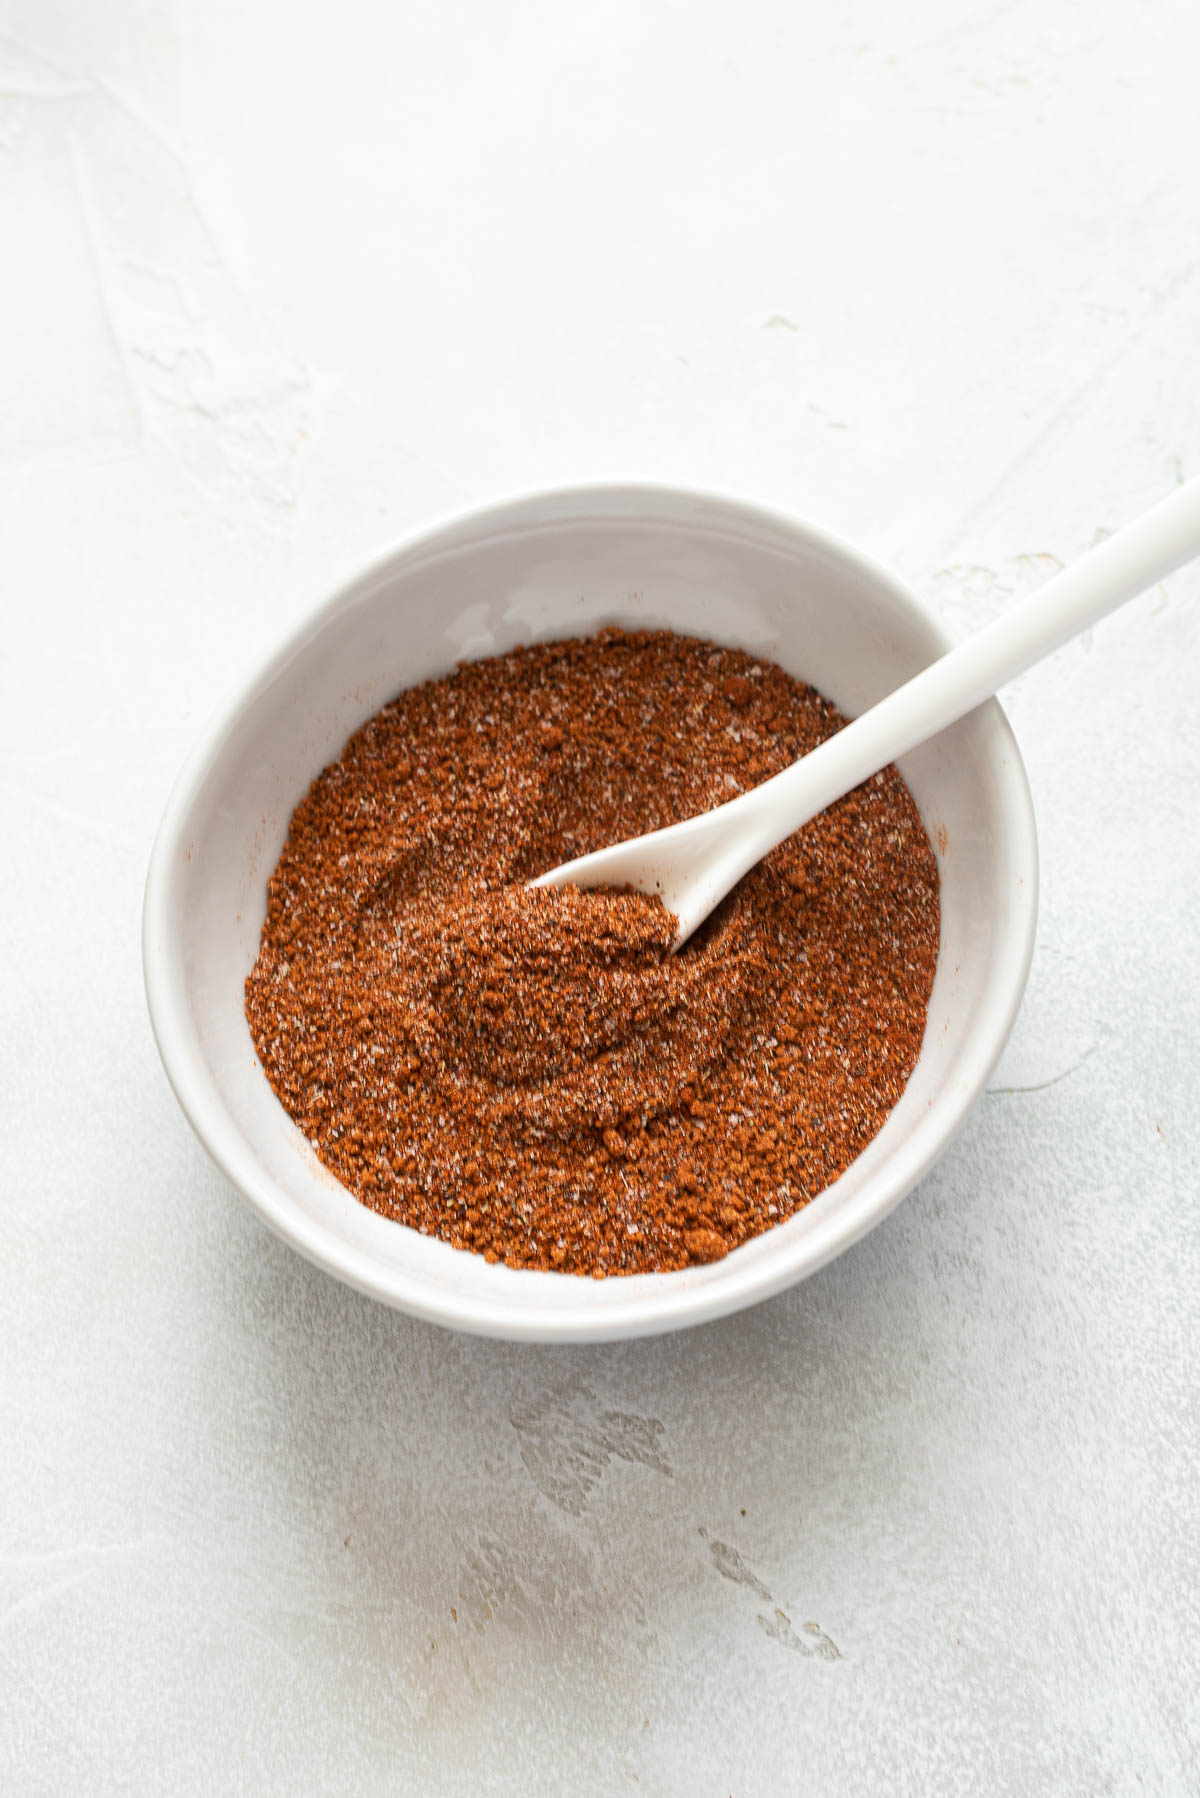 bbq chicken rub in bowl with spoon in the middle